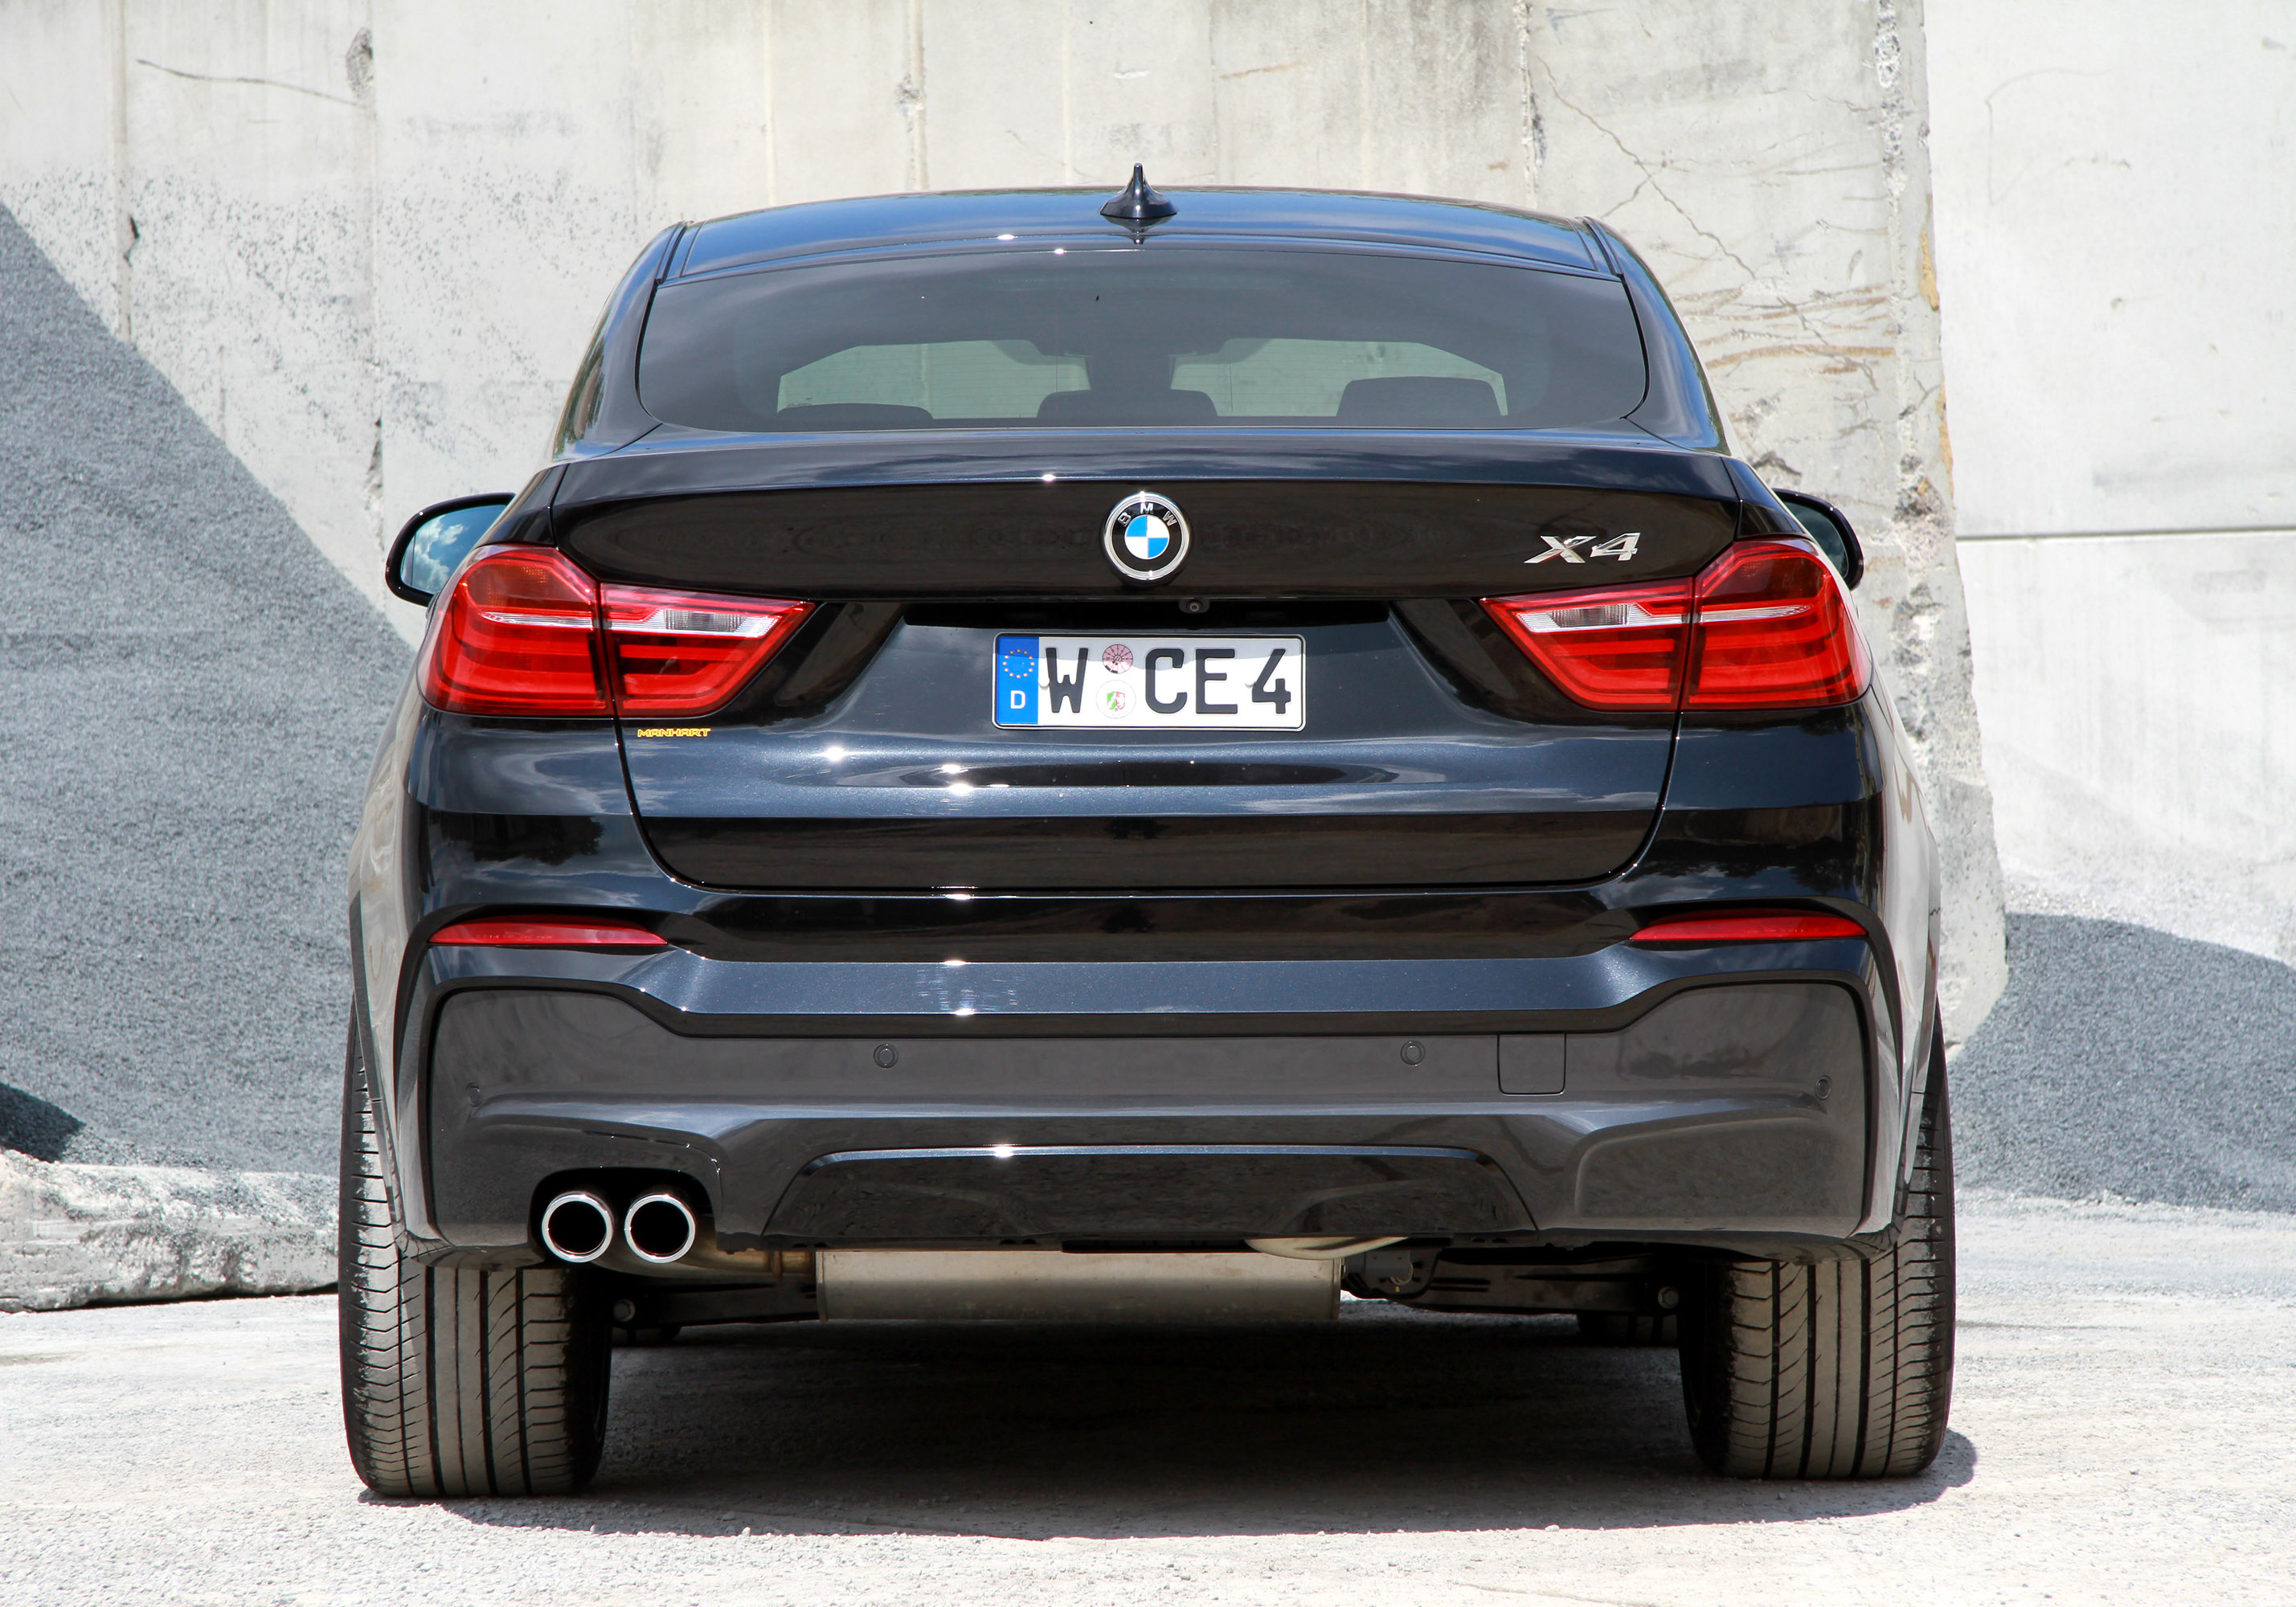 Manhart Racing Bmw X4 F26 375hp And 740nm